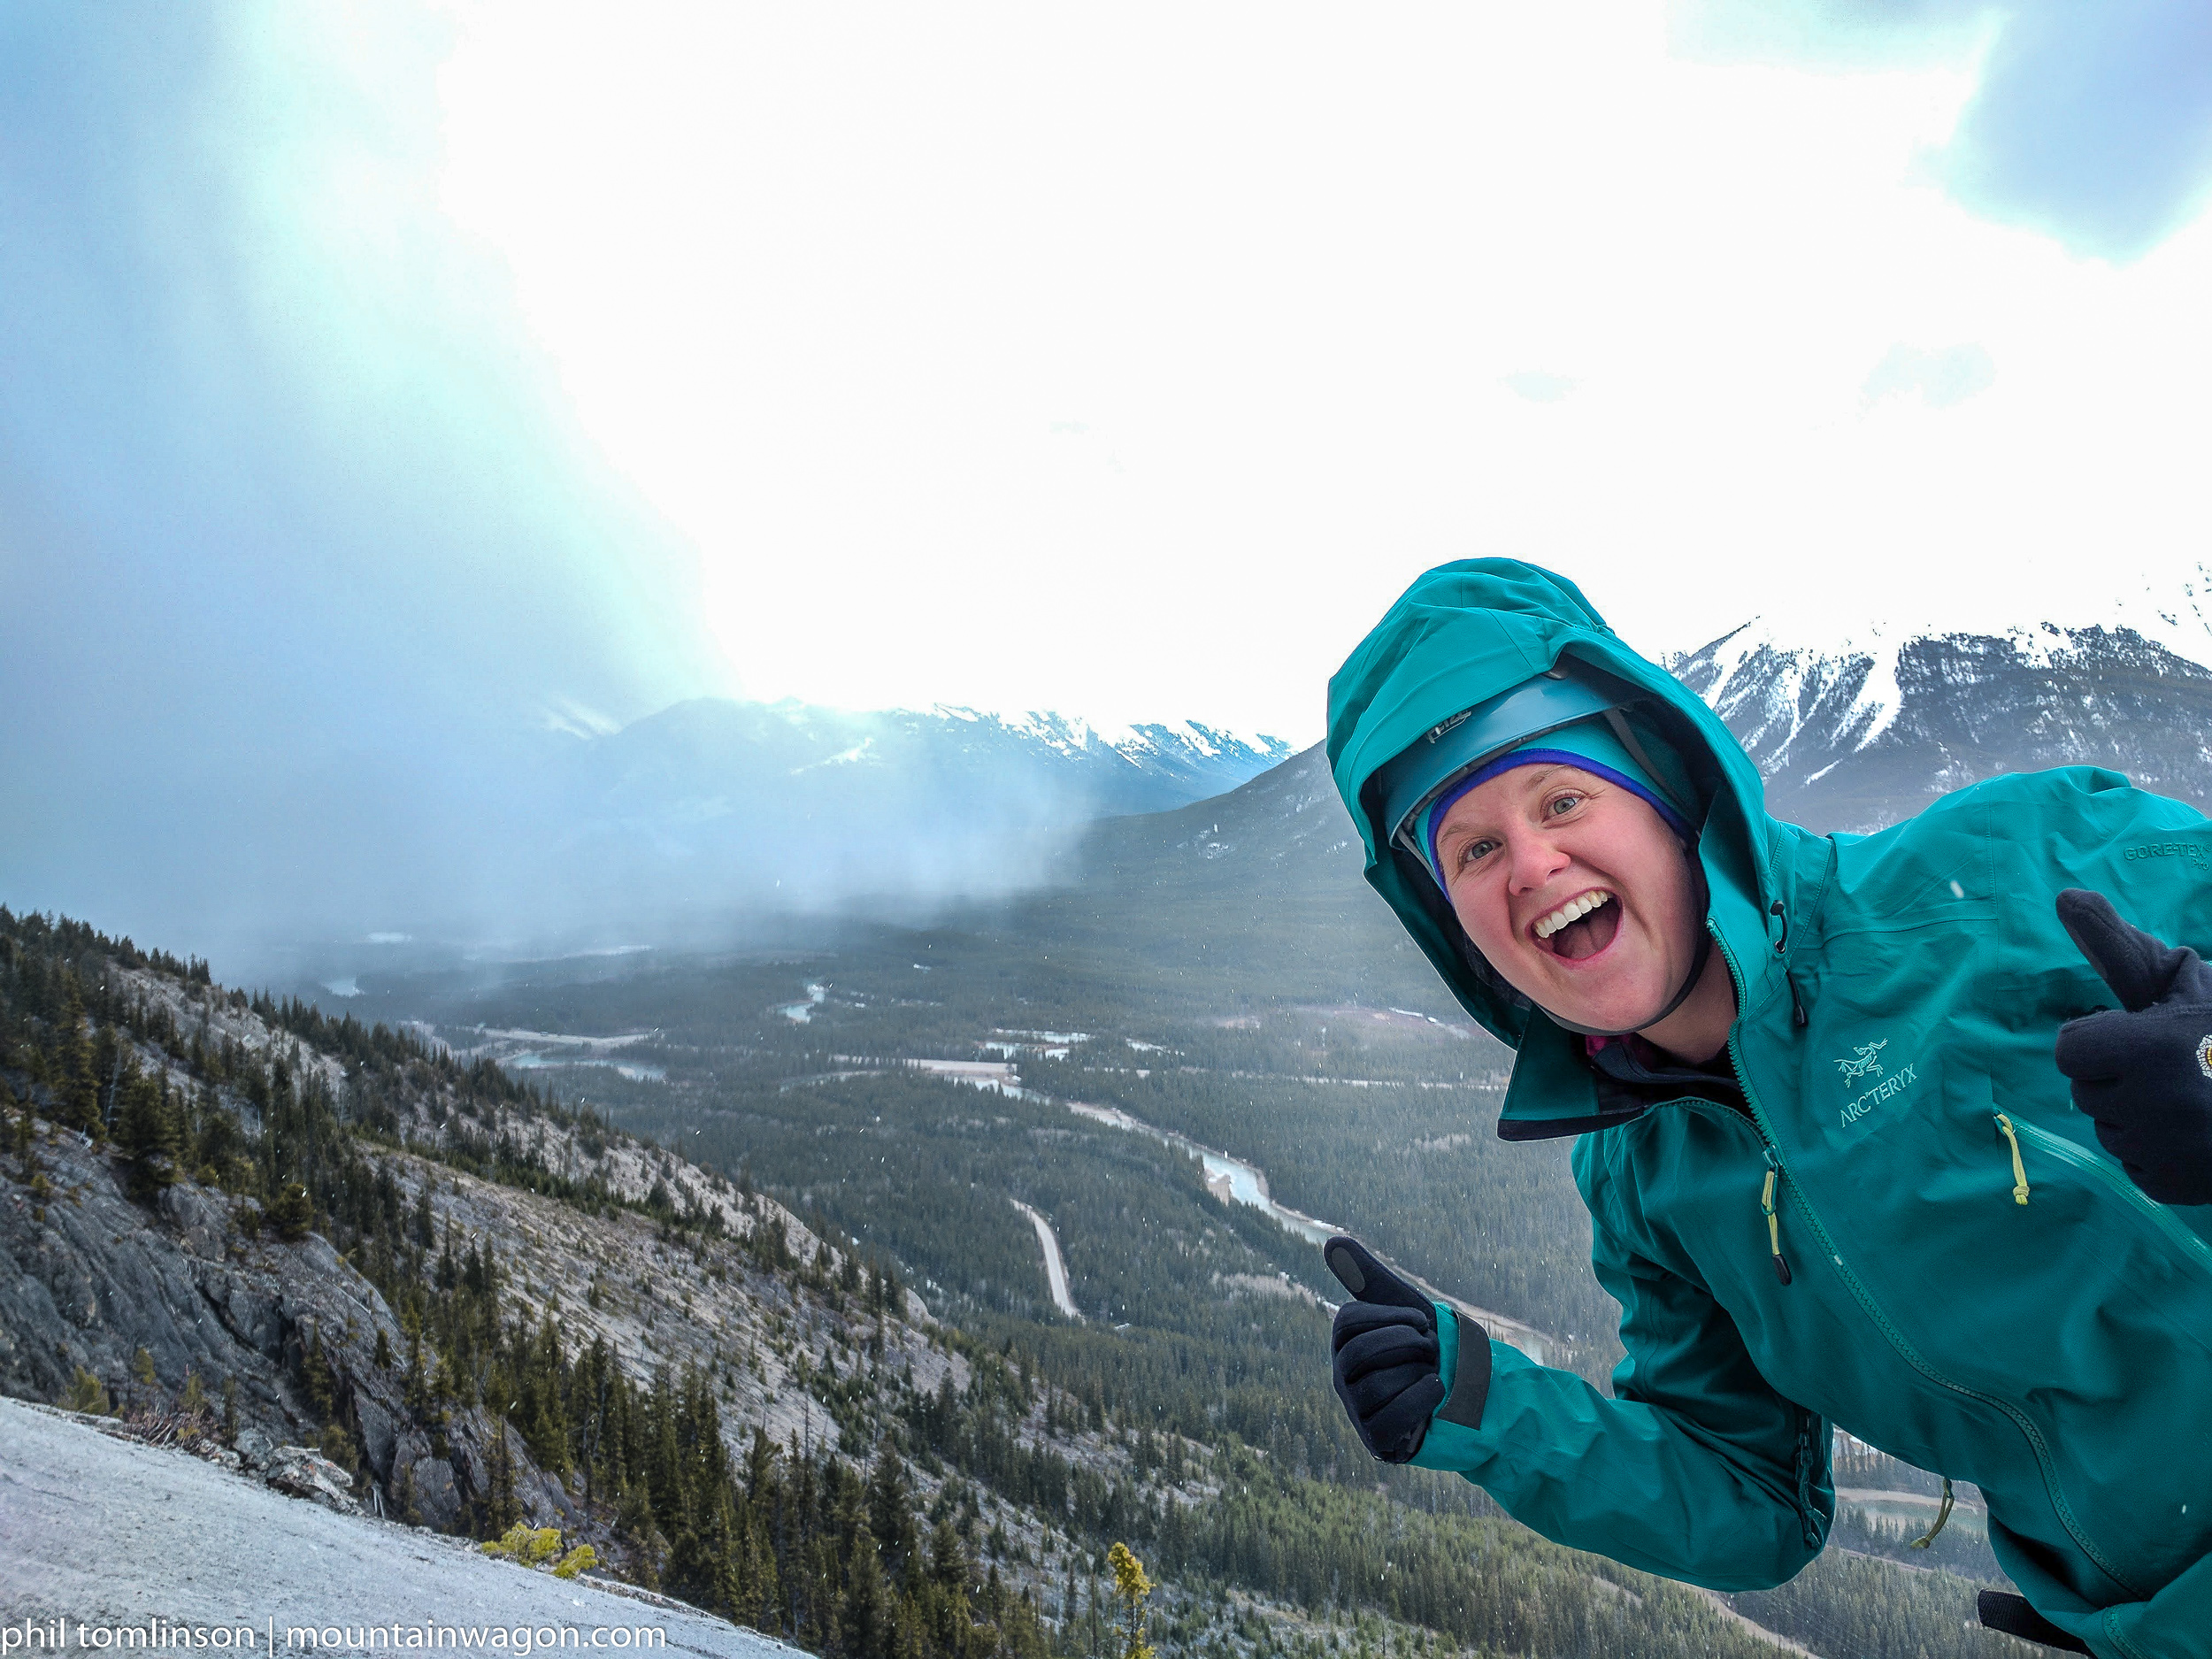 Bode, stoked about the snow squall that just rolled over us